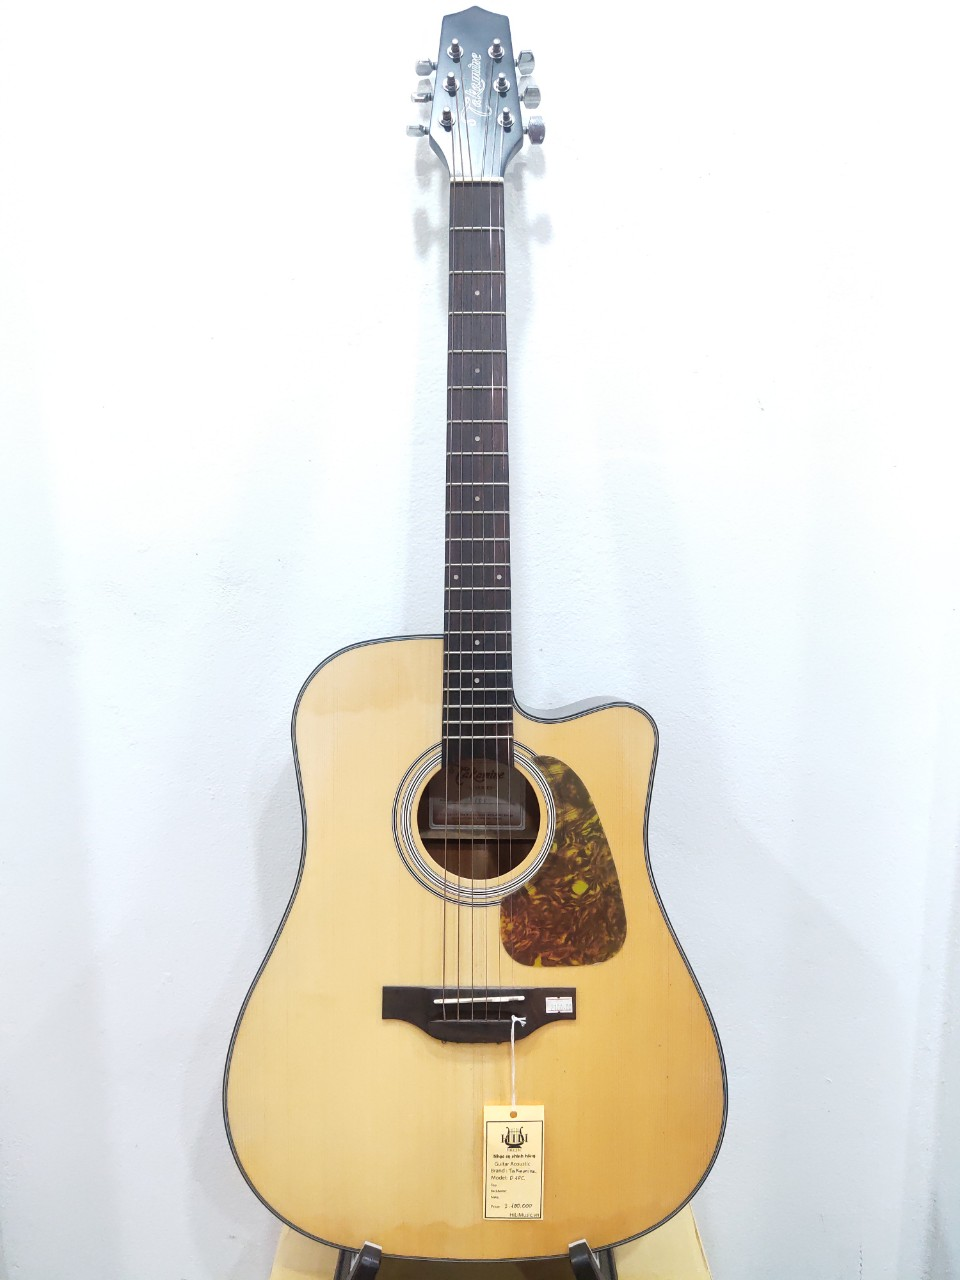 Đàn Guitar Acoustic Takamine D10C made in China